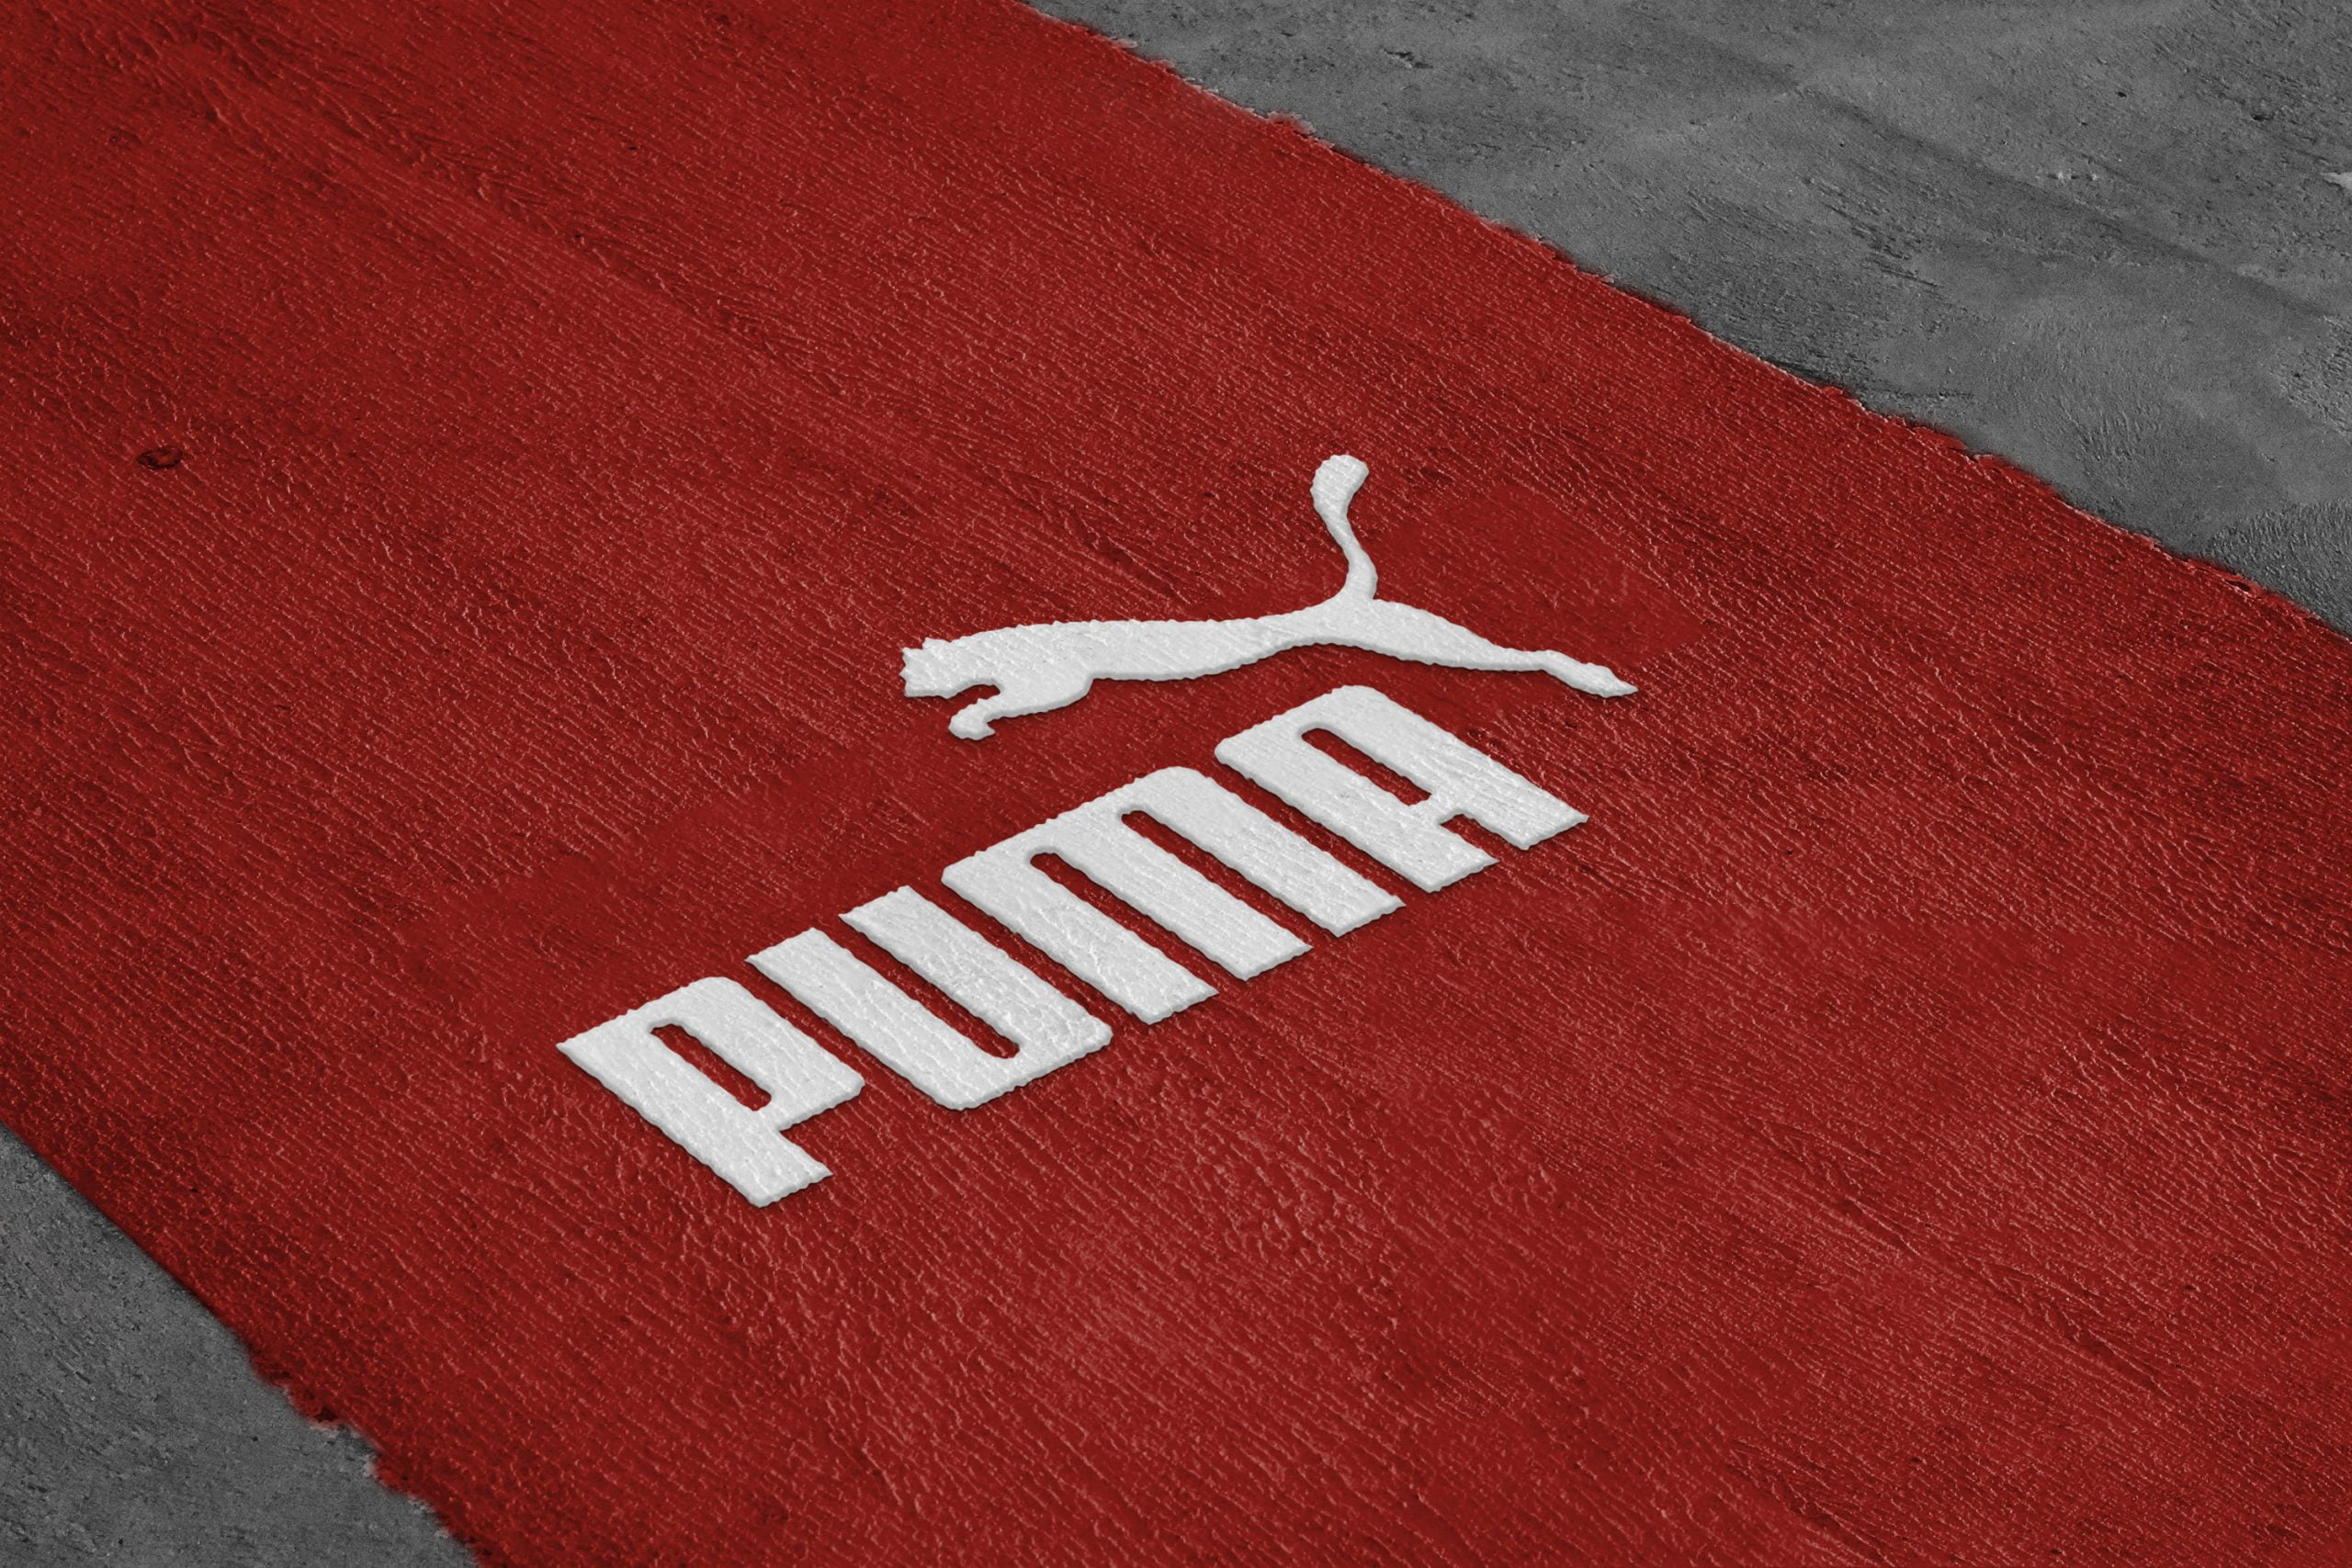 Road Paint Logo Mockup in Photoshop